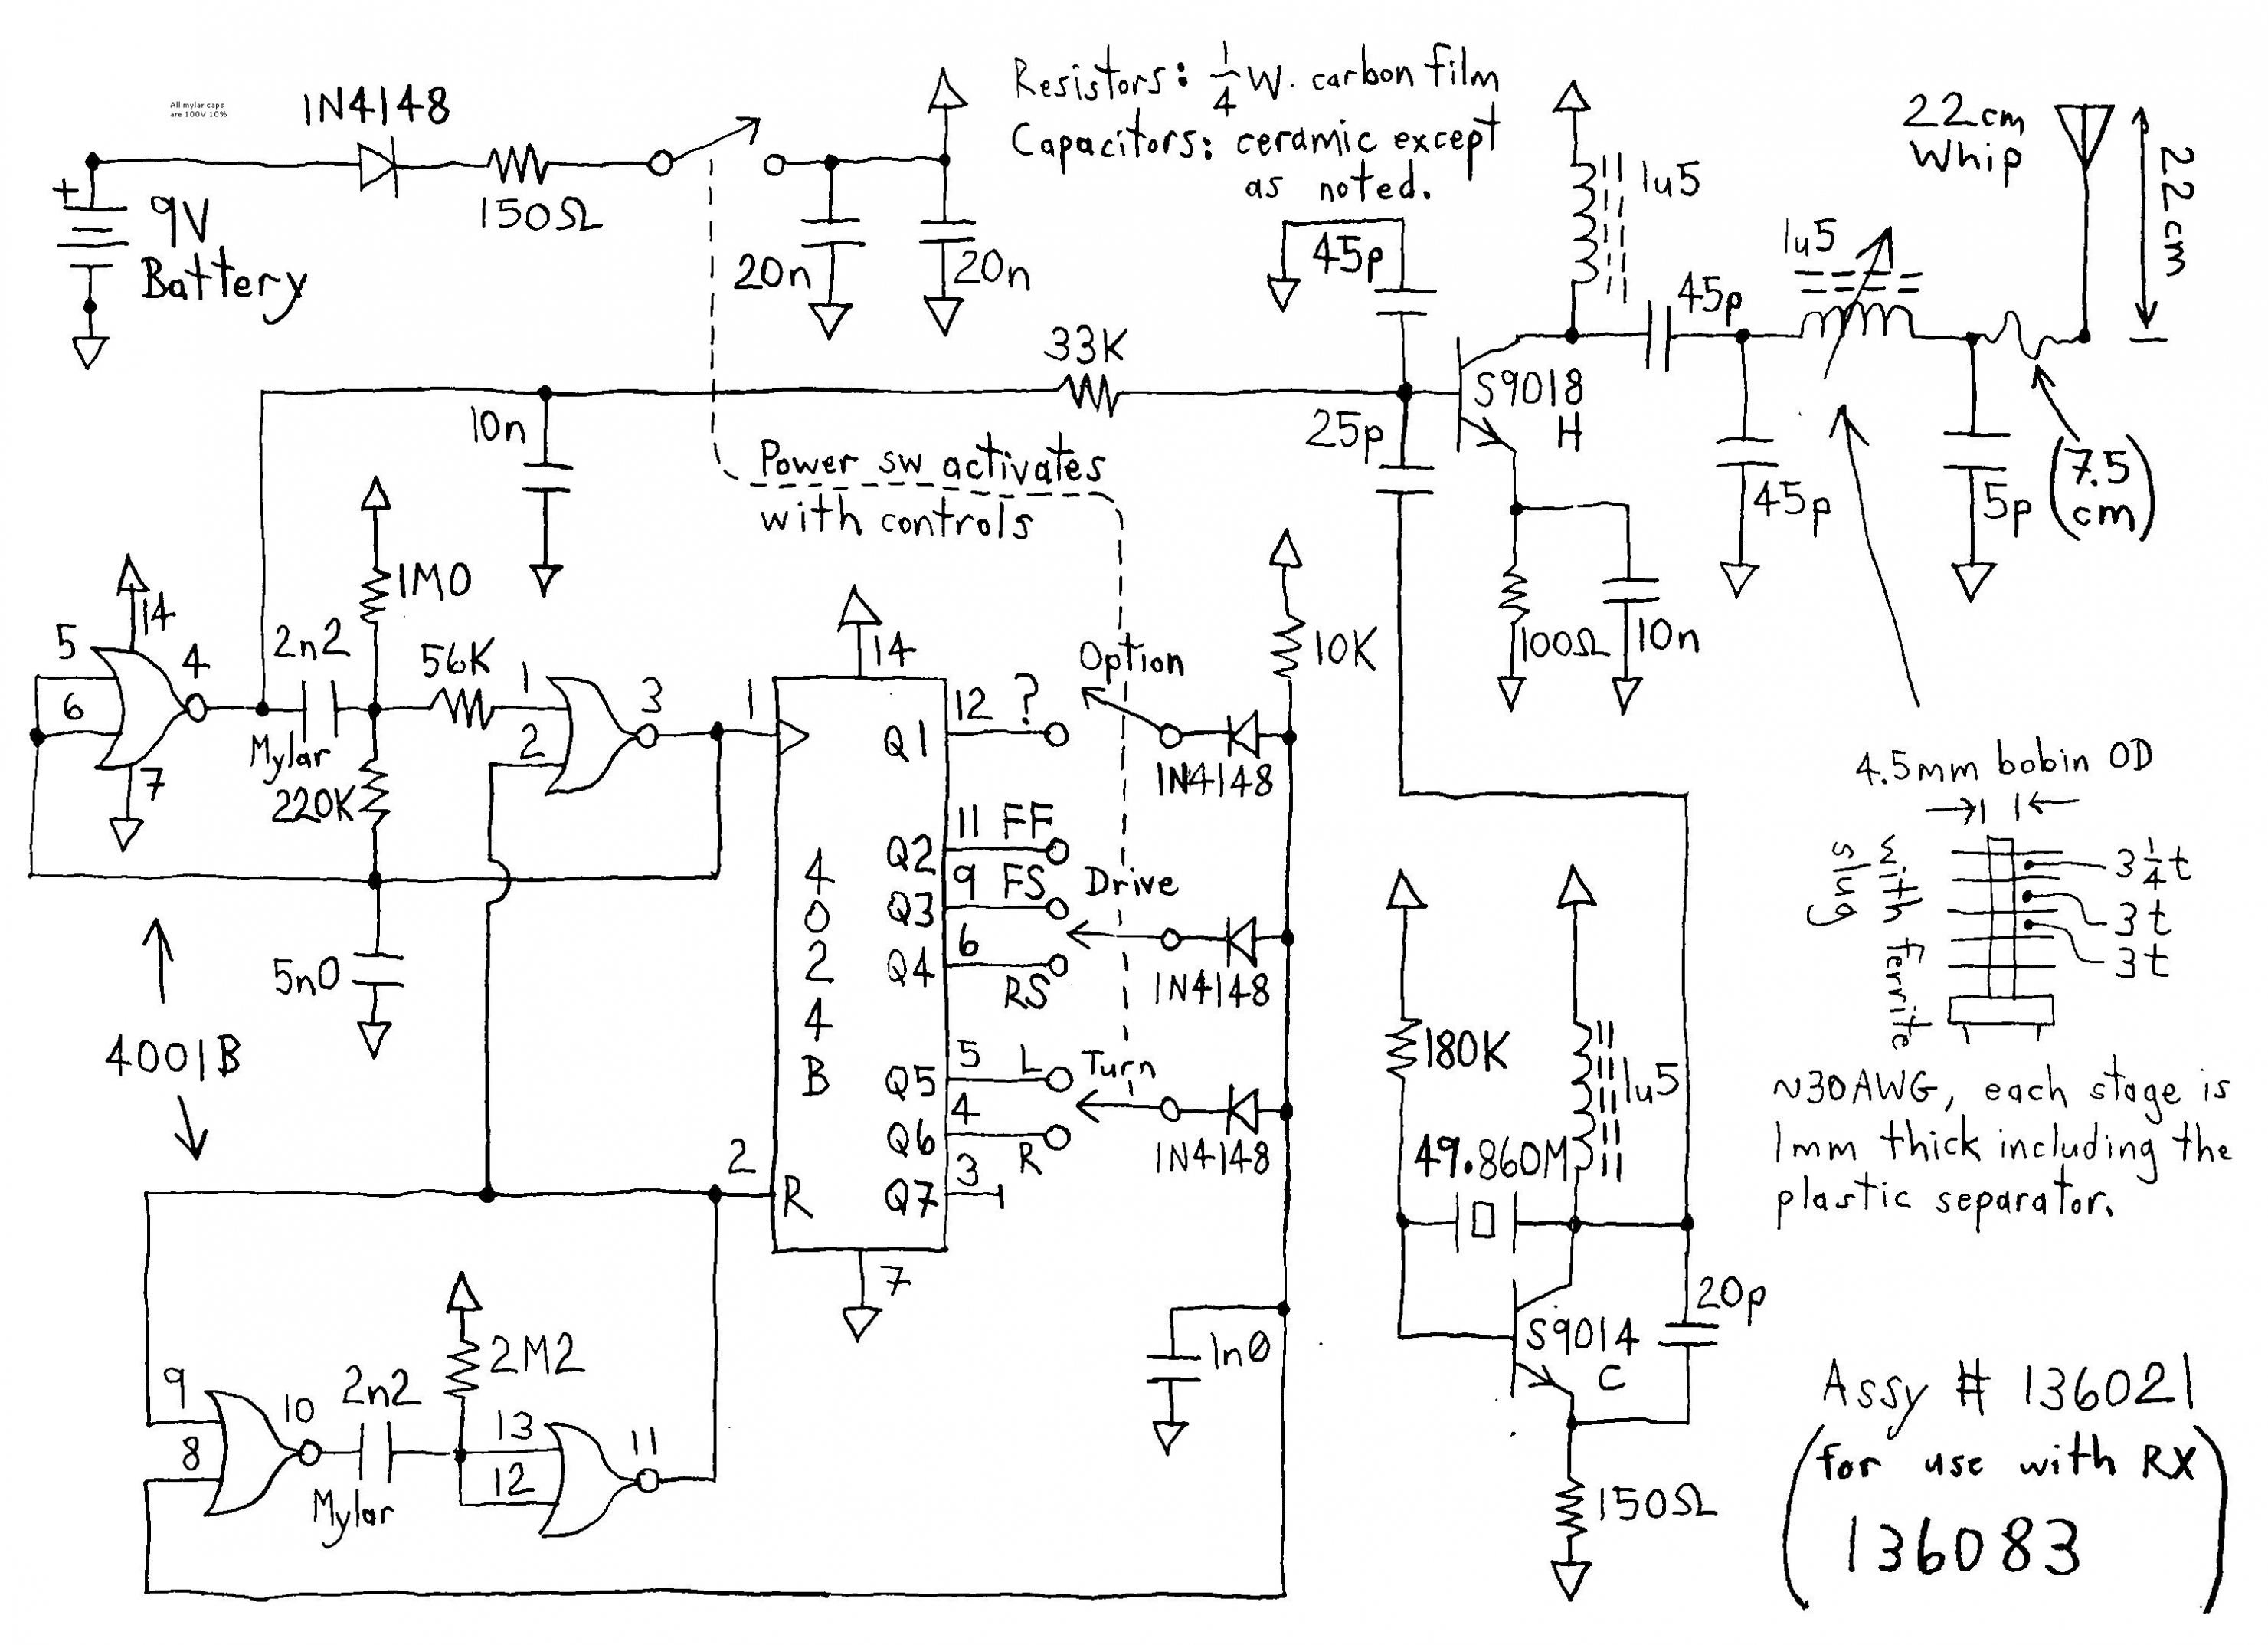 4 Prong Generator Plug Wiring Diagram – Wiring Diagram Switch To - 4 Prong Generator Plug Wiring Diagram